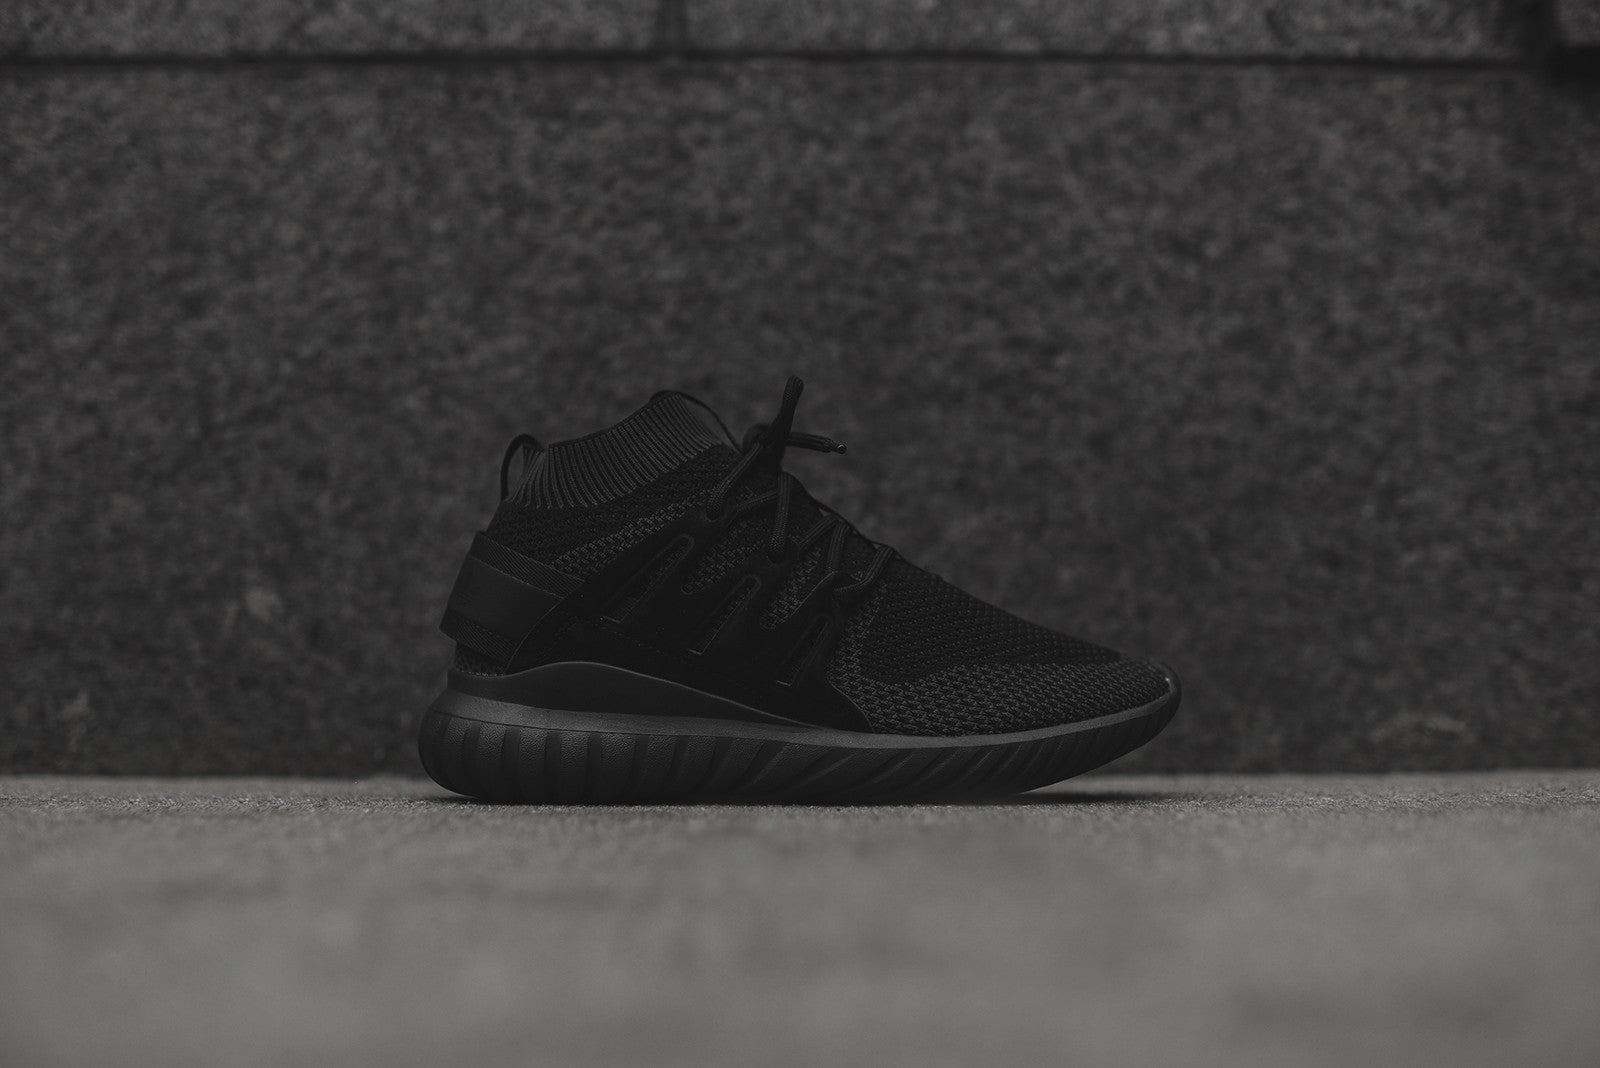 adidas Originals Tubular Nova Primeknit - Triple Black